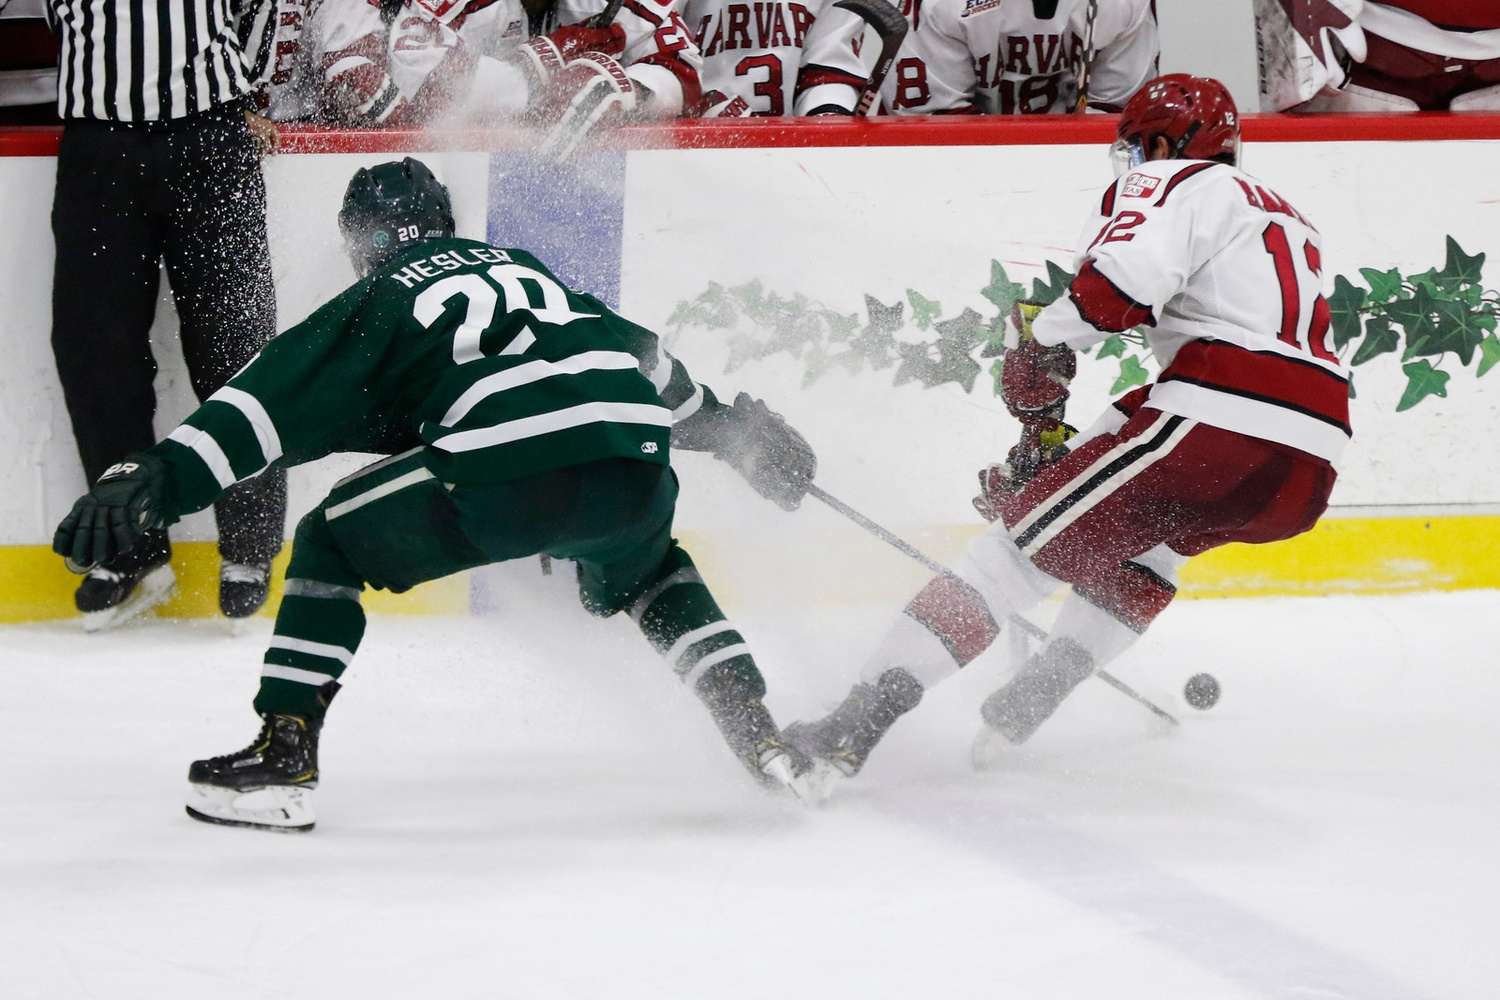 Harvard eliminated Dartmouth from the conference playoffs in straight games, not needed the third game in the best-of-three series to seal the deal.